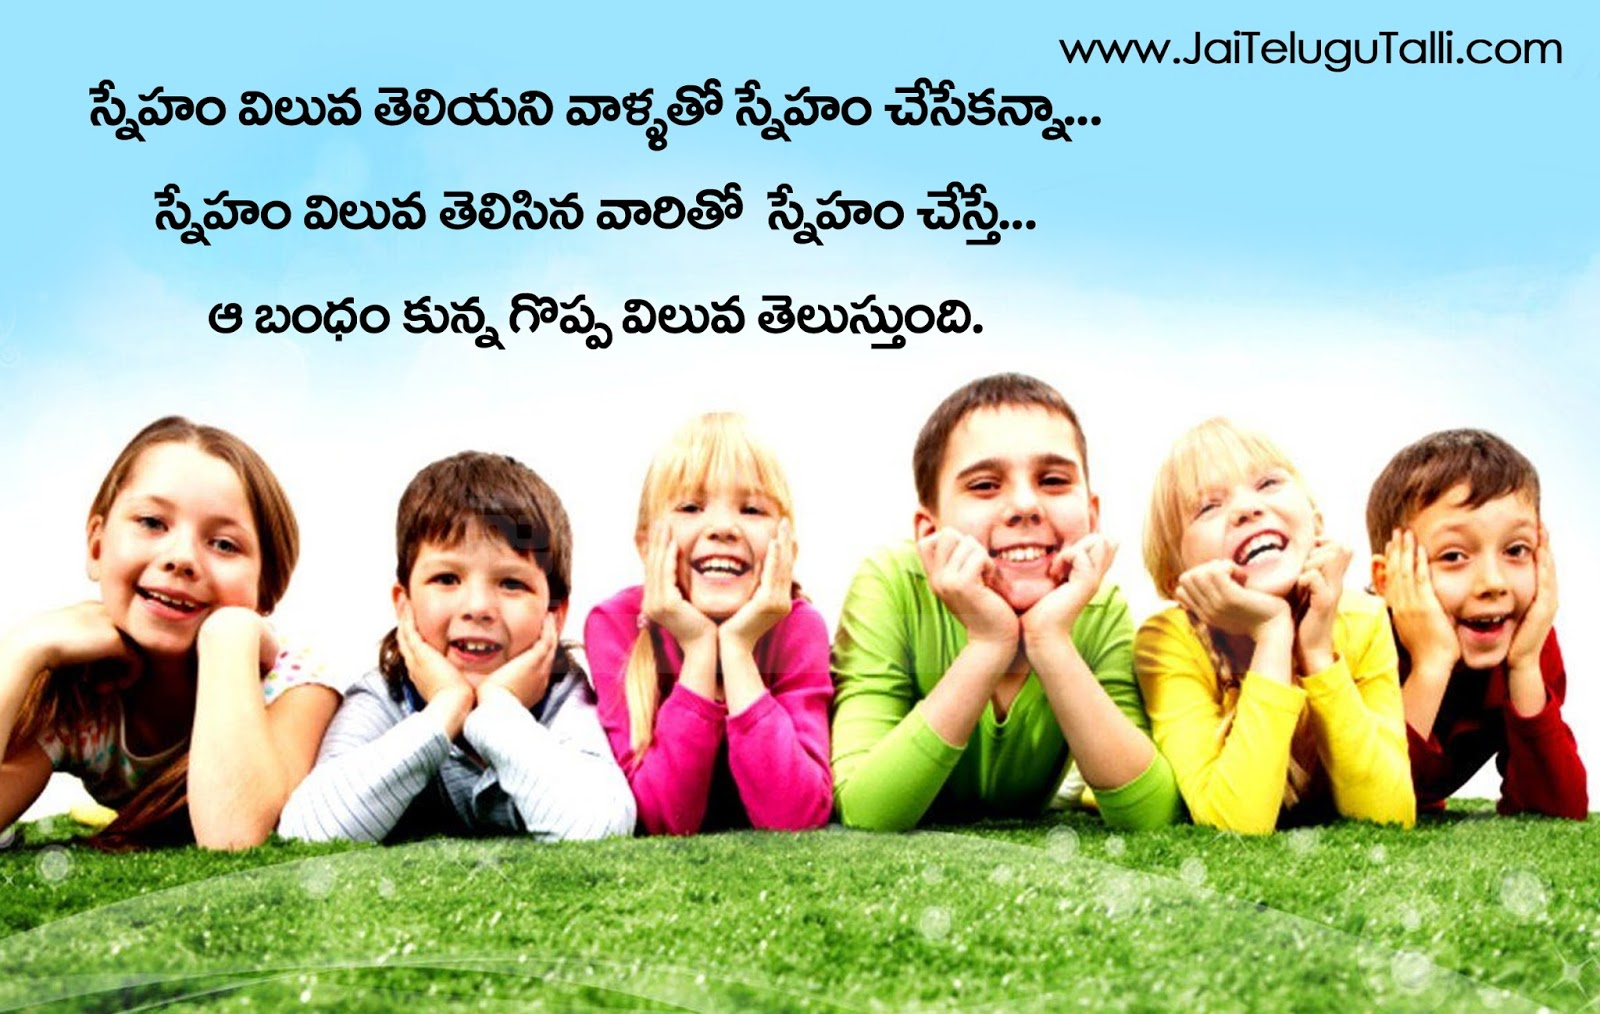 Nice Quotes About Friendship Friendship Quotes In Telugu With Nice Hd Wallpapers  Www